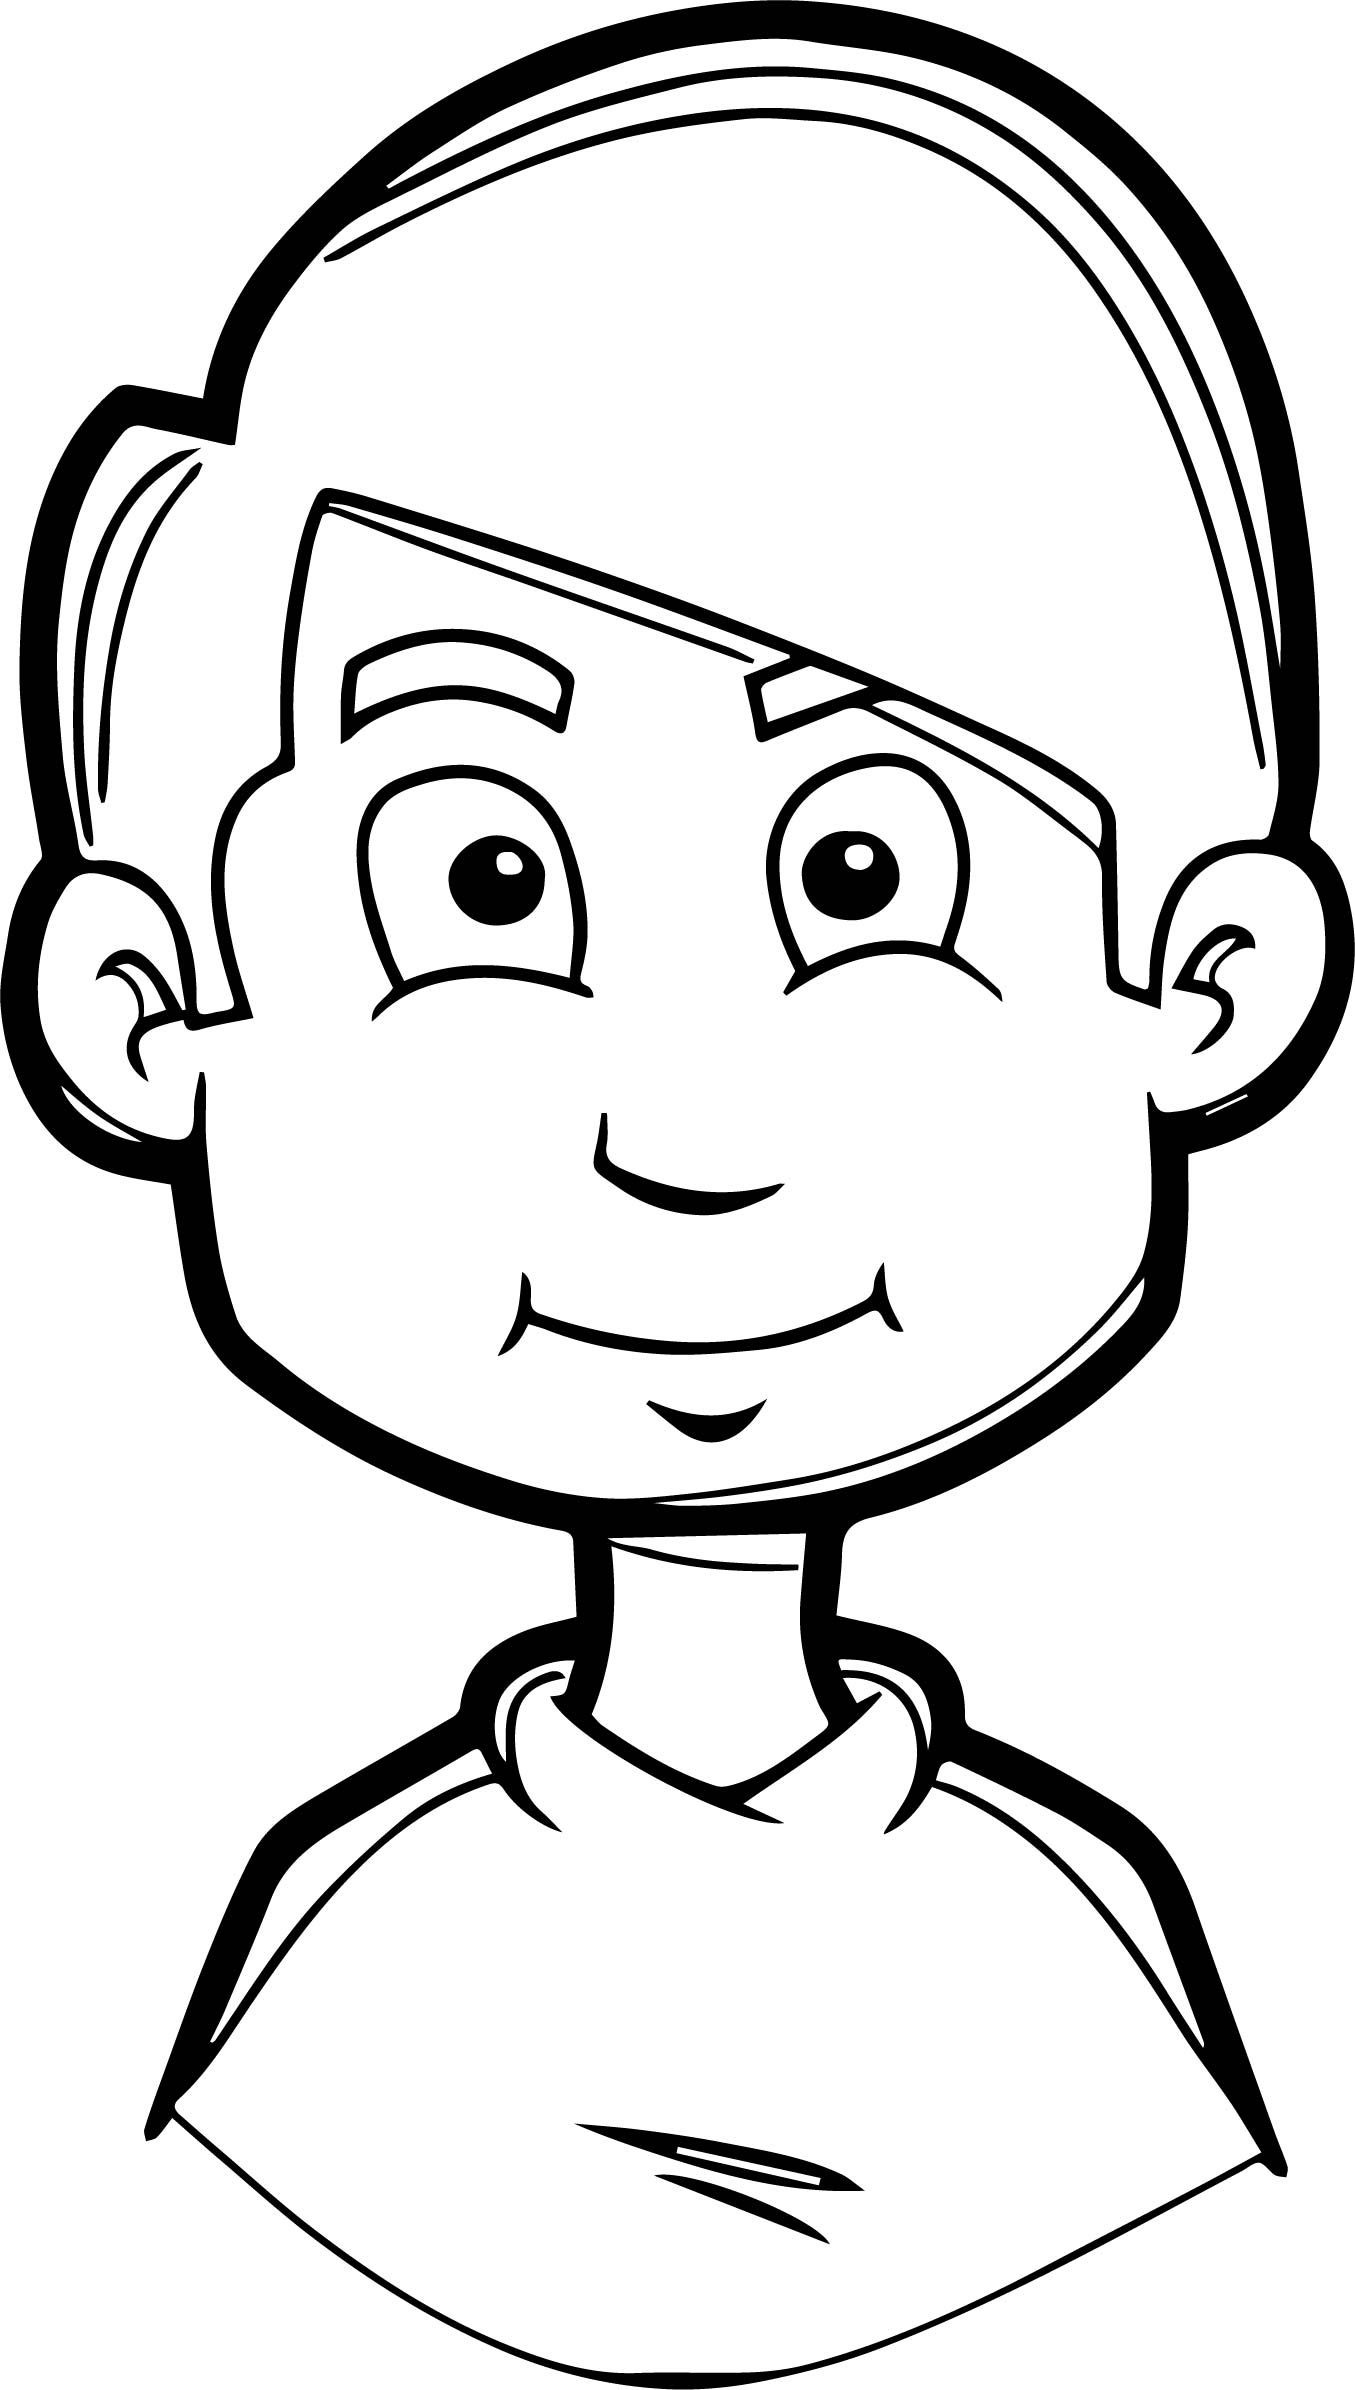 Cool Boy Soccer Face Coloring Page Sports Coloring Pages Football Coloring Pages Witch Coloring Pages